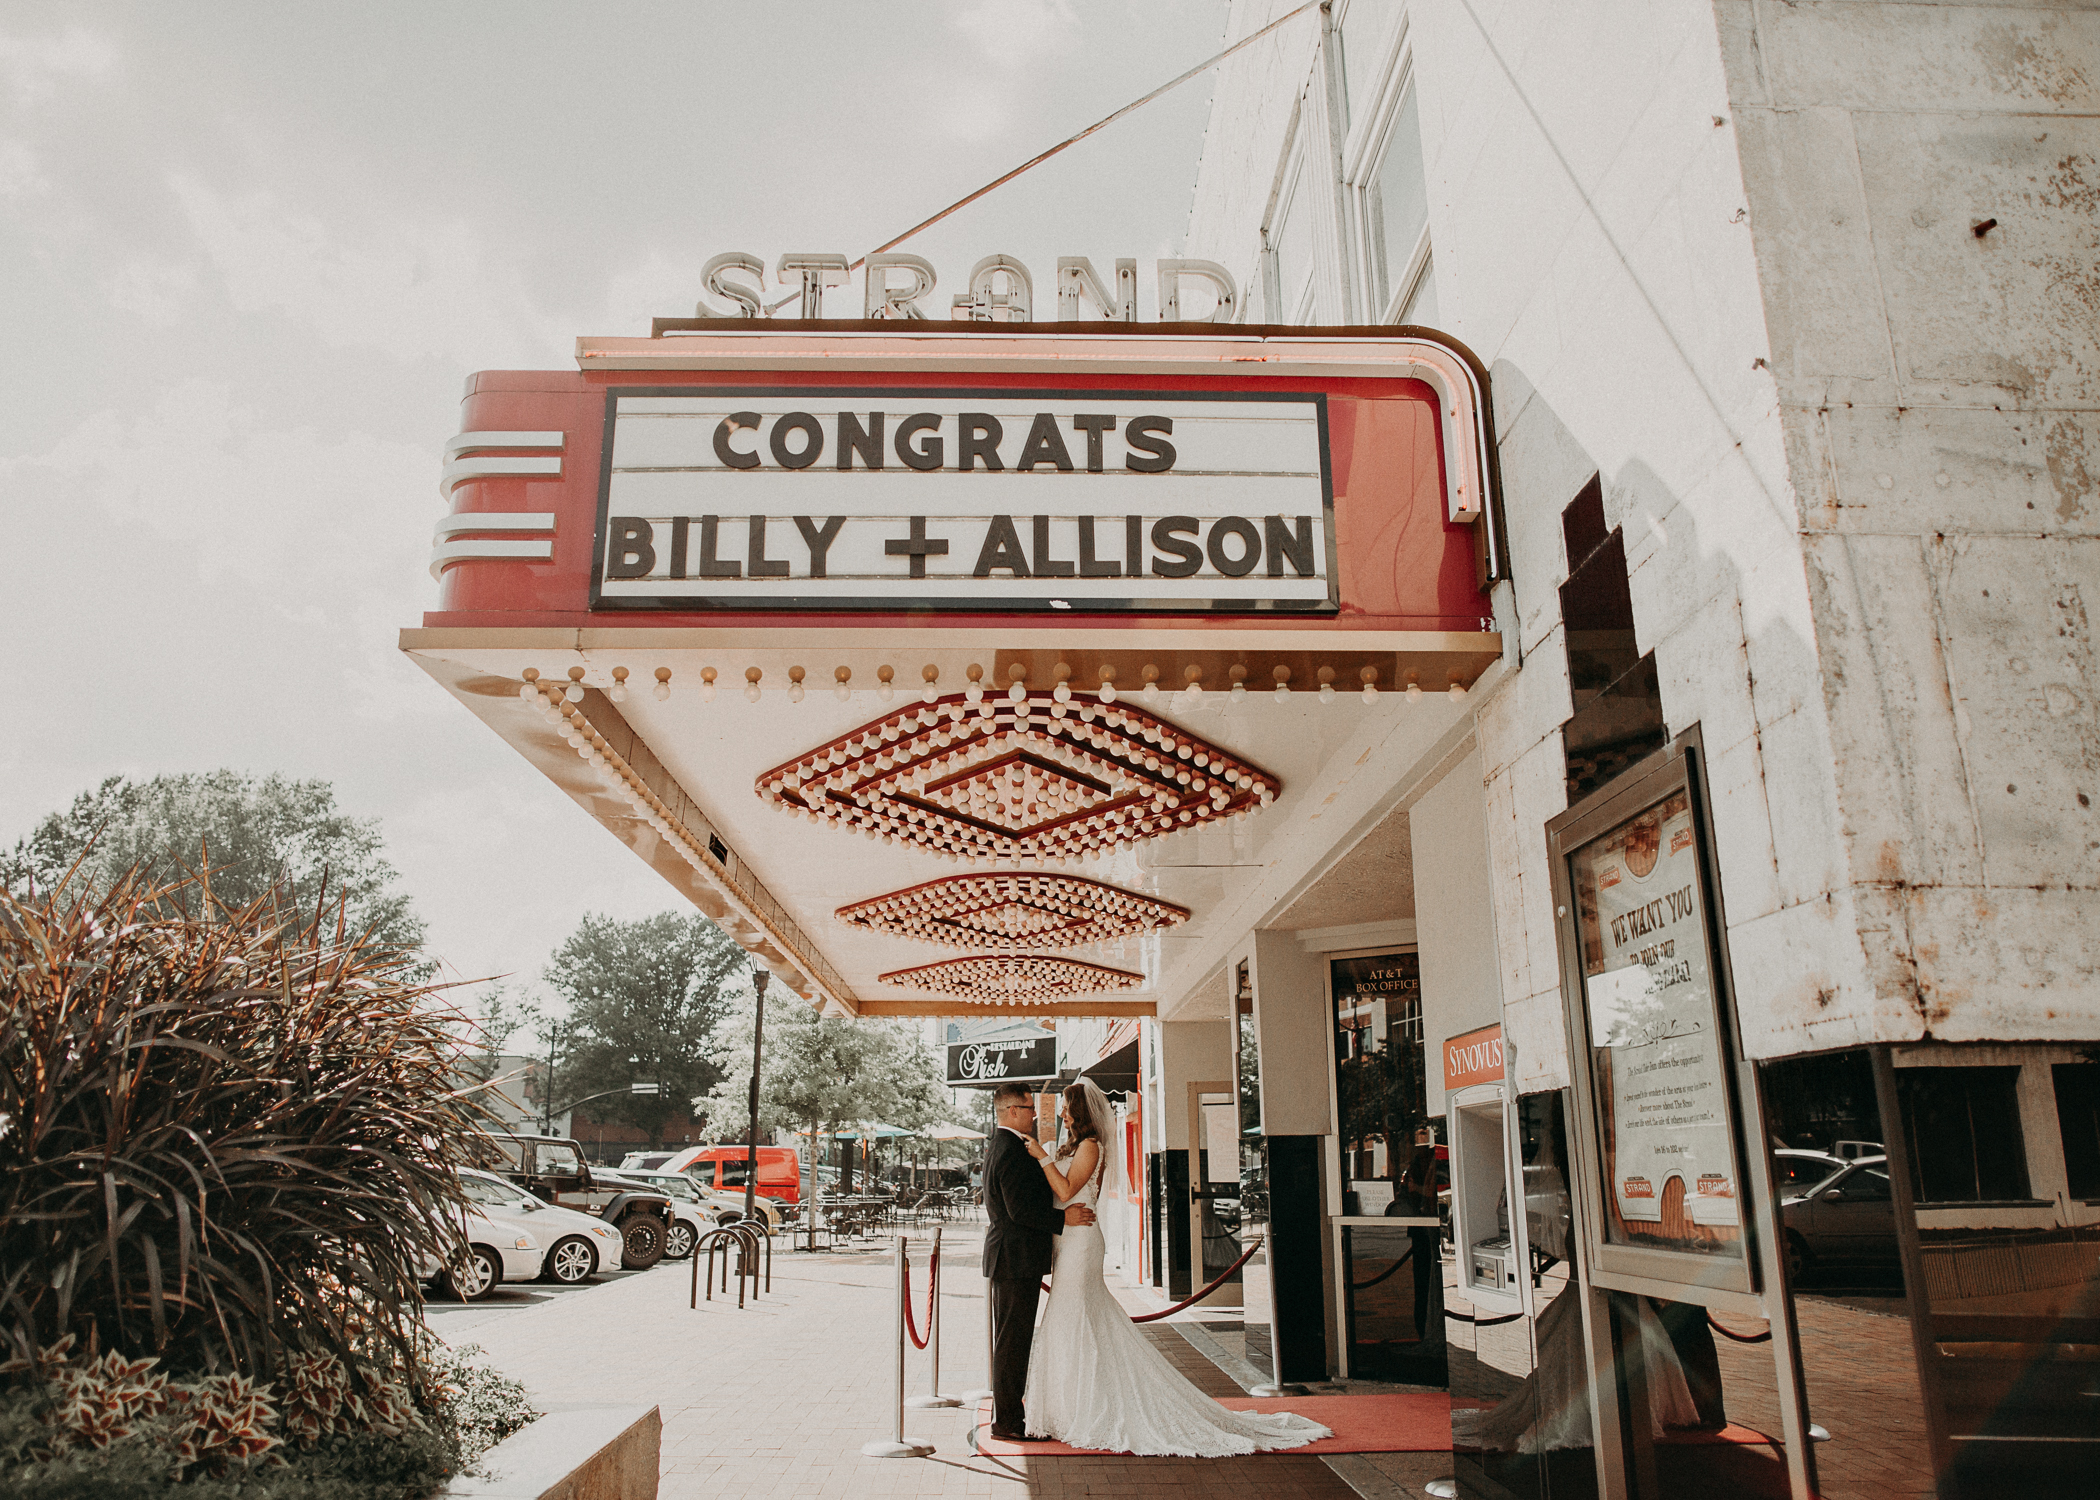 Allison and Billy - earlsmithstrand_marietta square georgia wedding photography-37.jpg